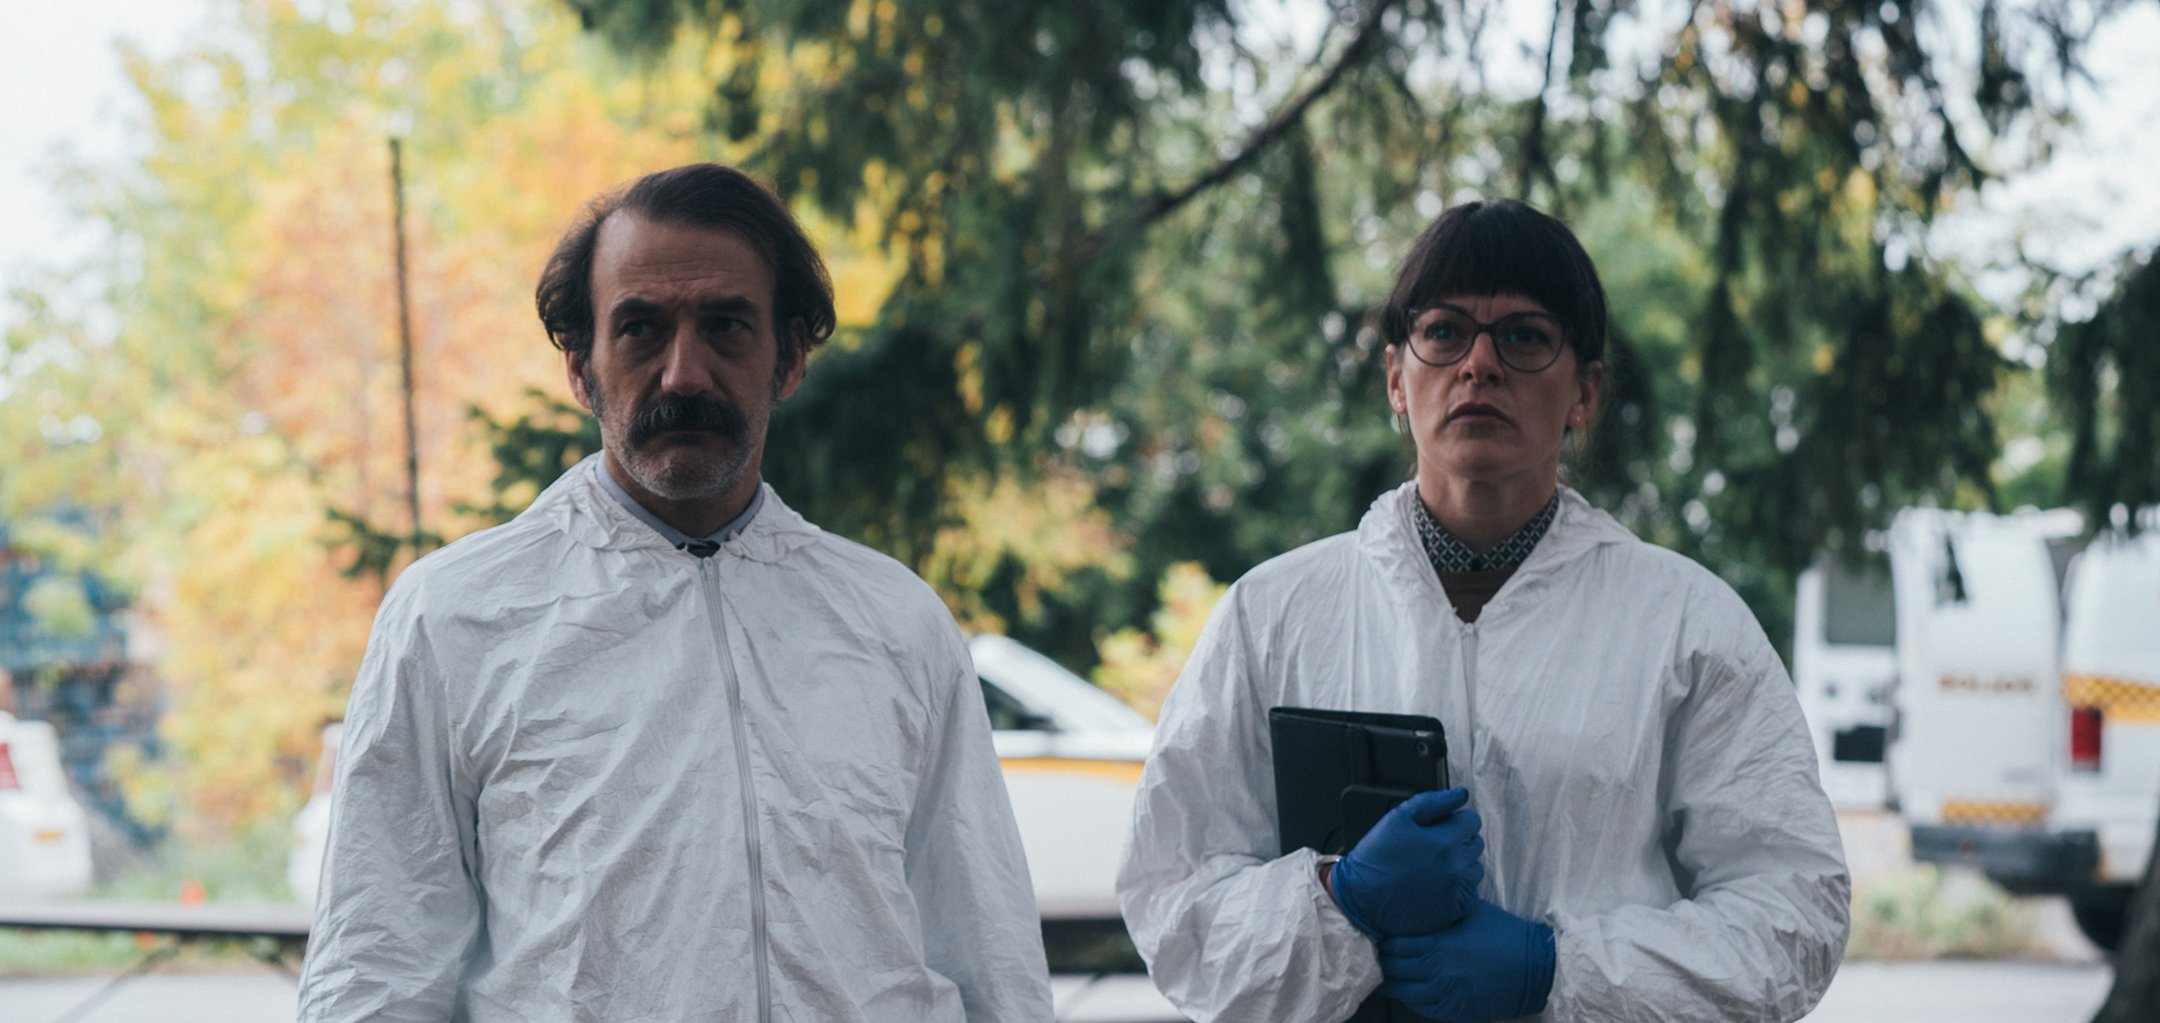 Two people in crime scene clothing in a still from 'Dark Soul '(2021) Encore International